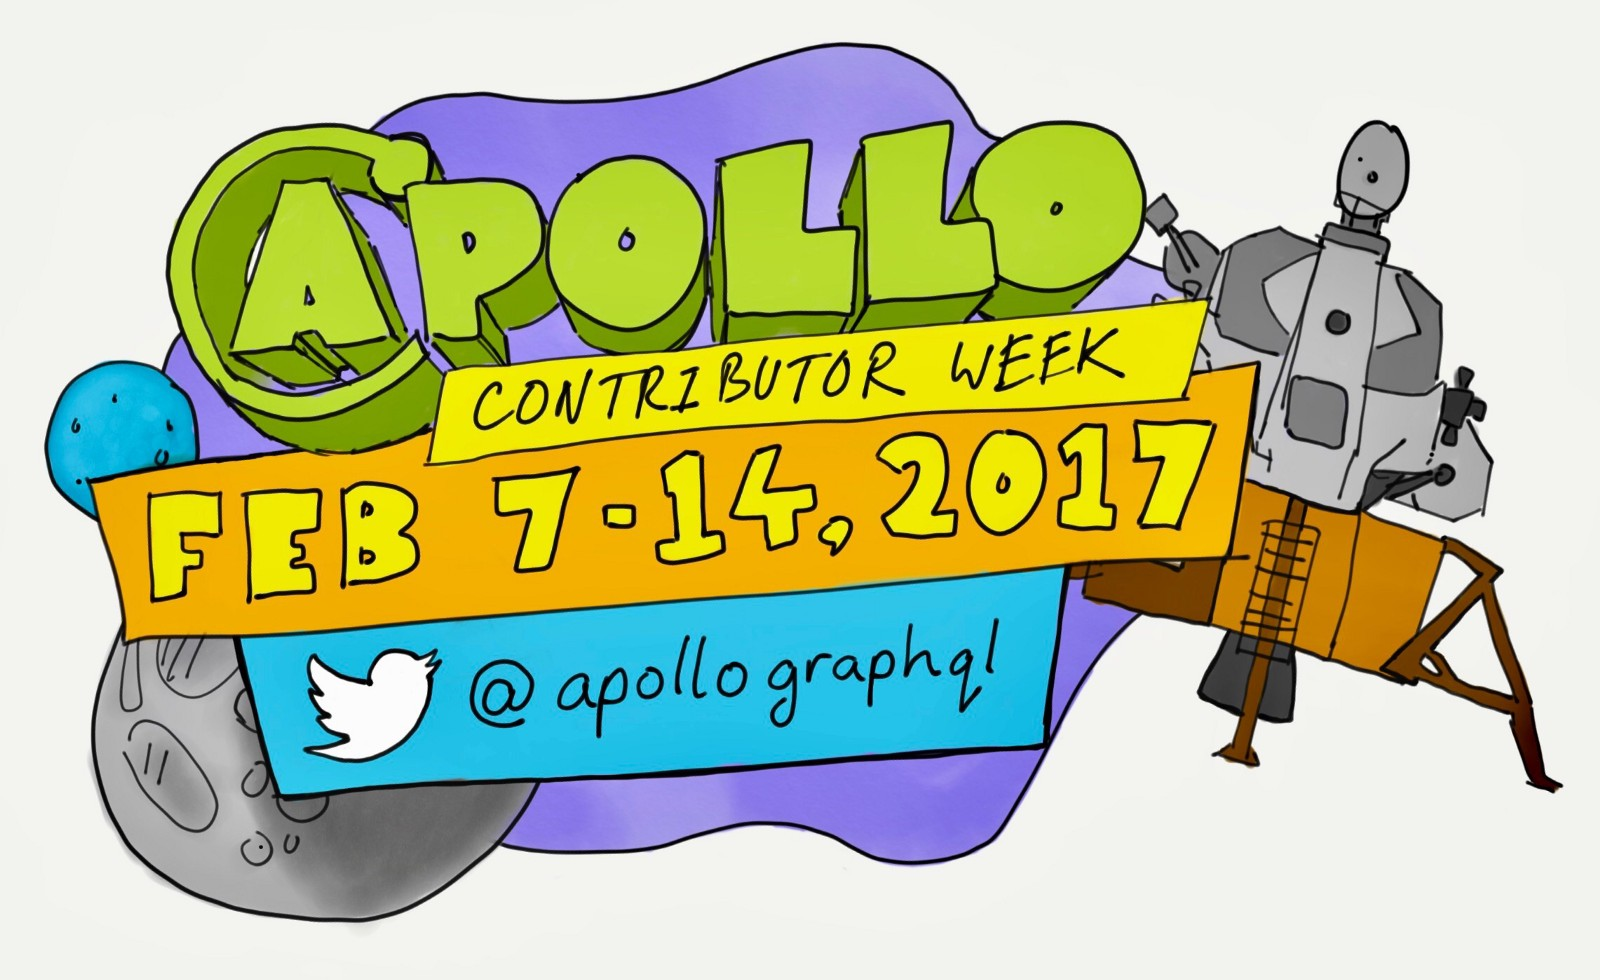 Date clipart next week Apollo Apollo the Late projects